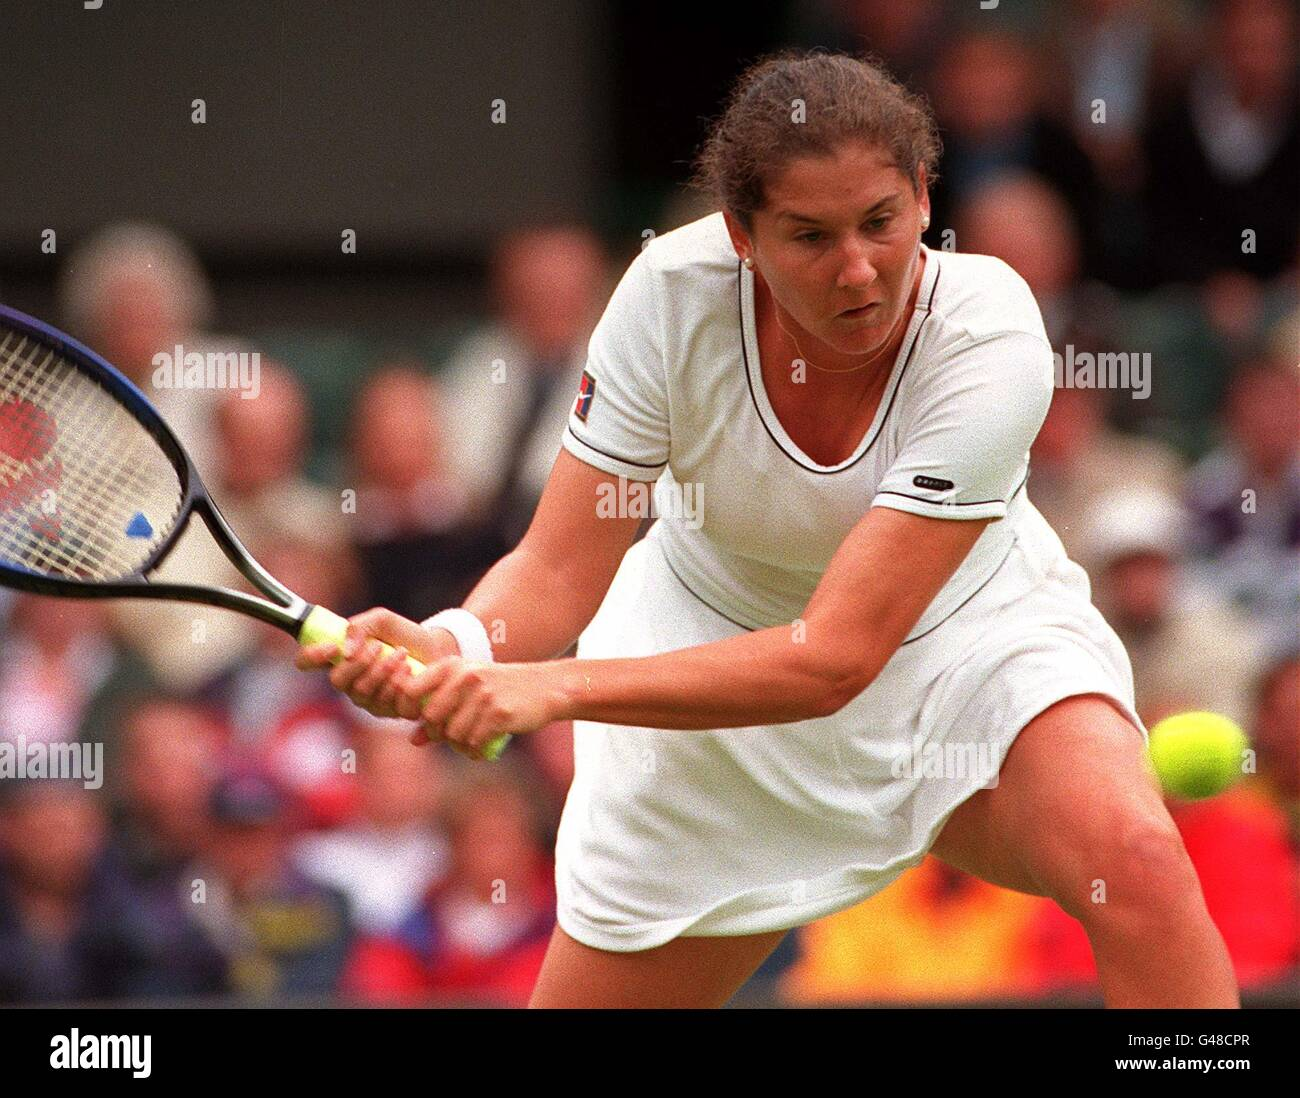 TENNIS Monica Seles Stock Royalty Free Image Alamy